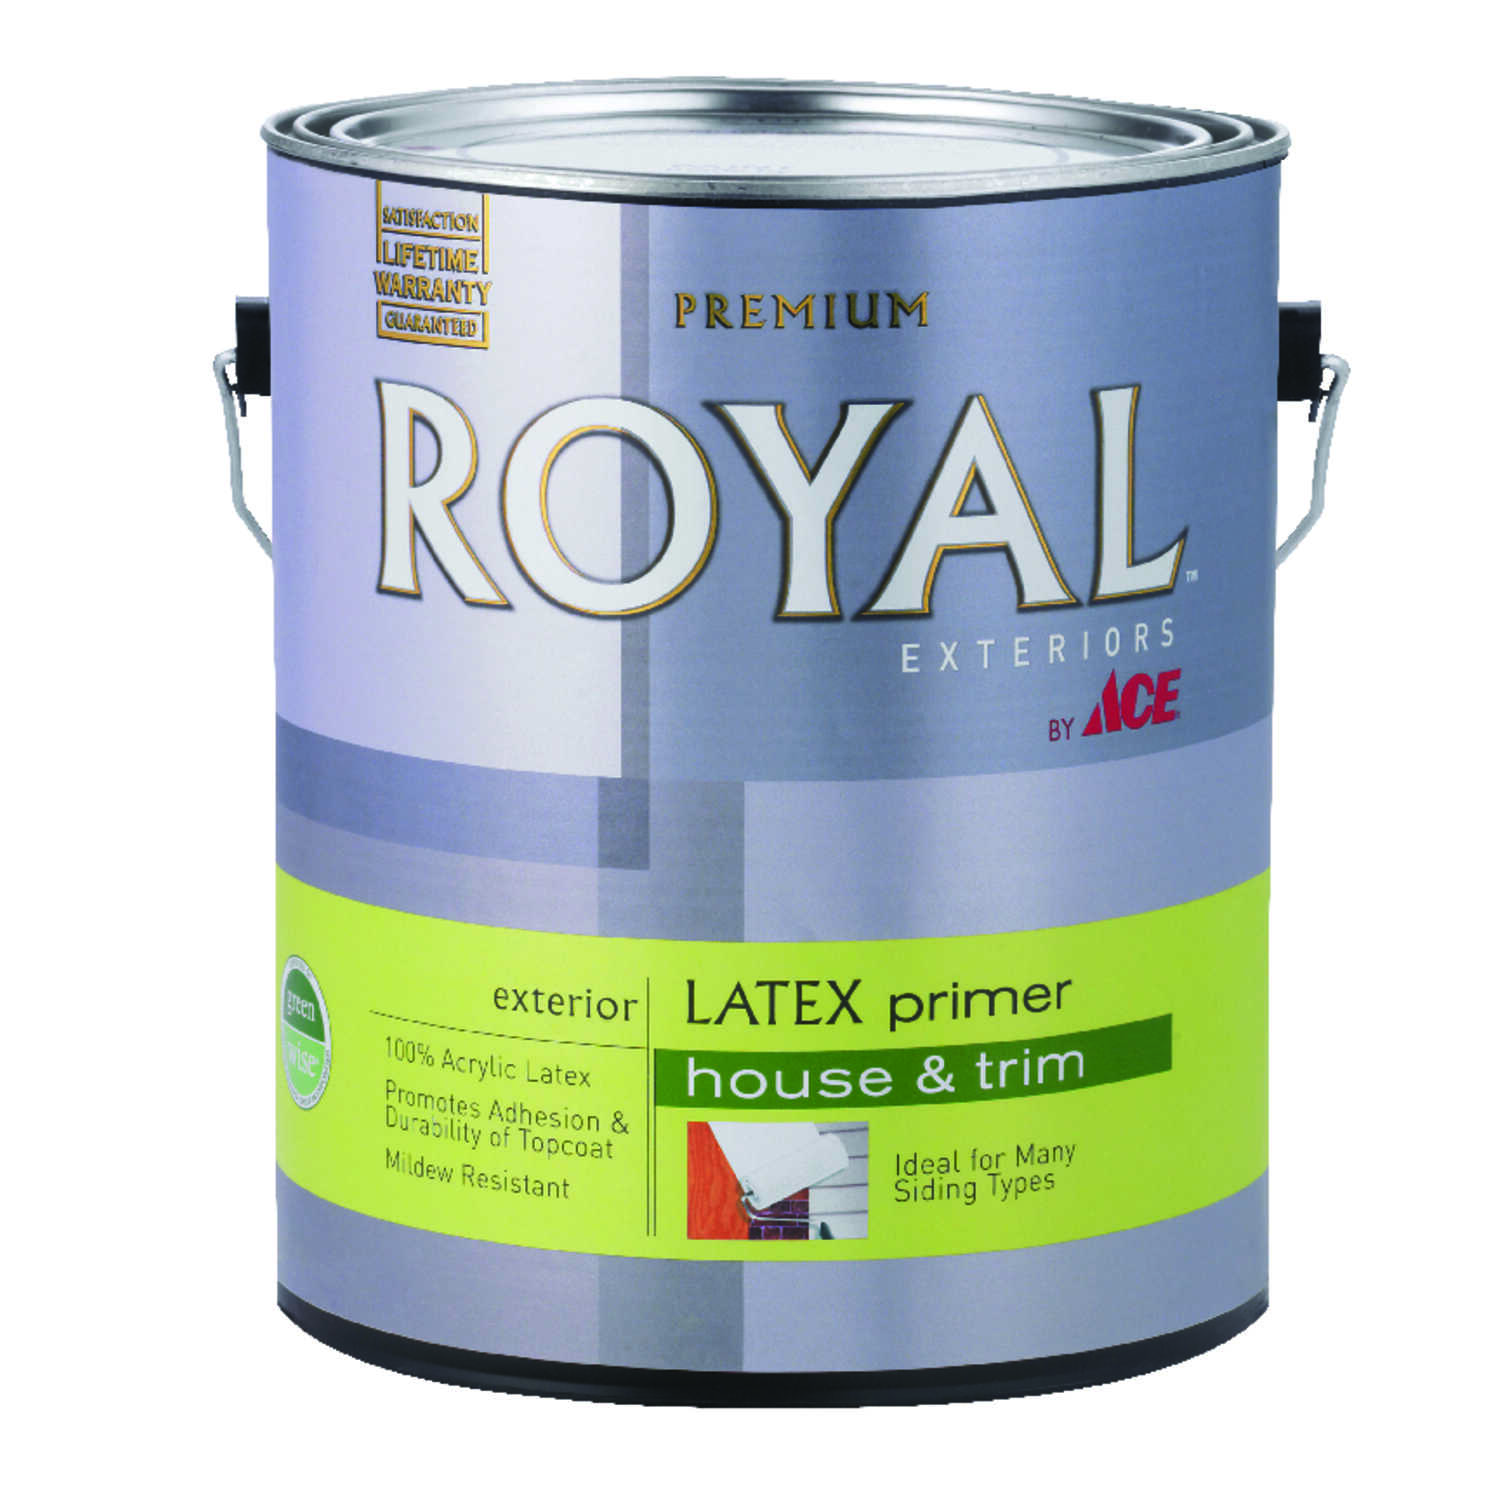 Ace  Royal Exteriors  Flat  White  Acrylic Latex  Latex Primer  For Wood 1 gal.